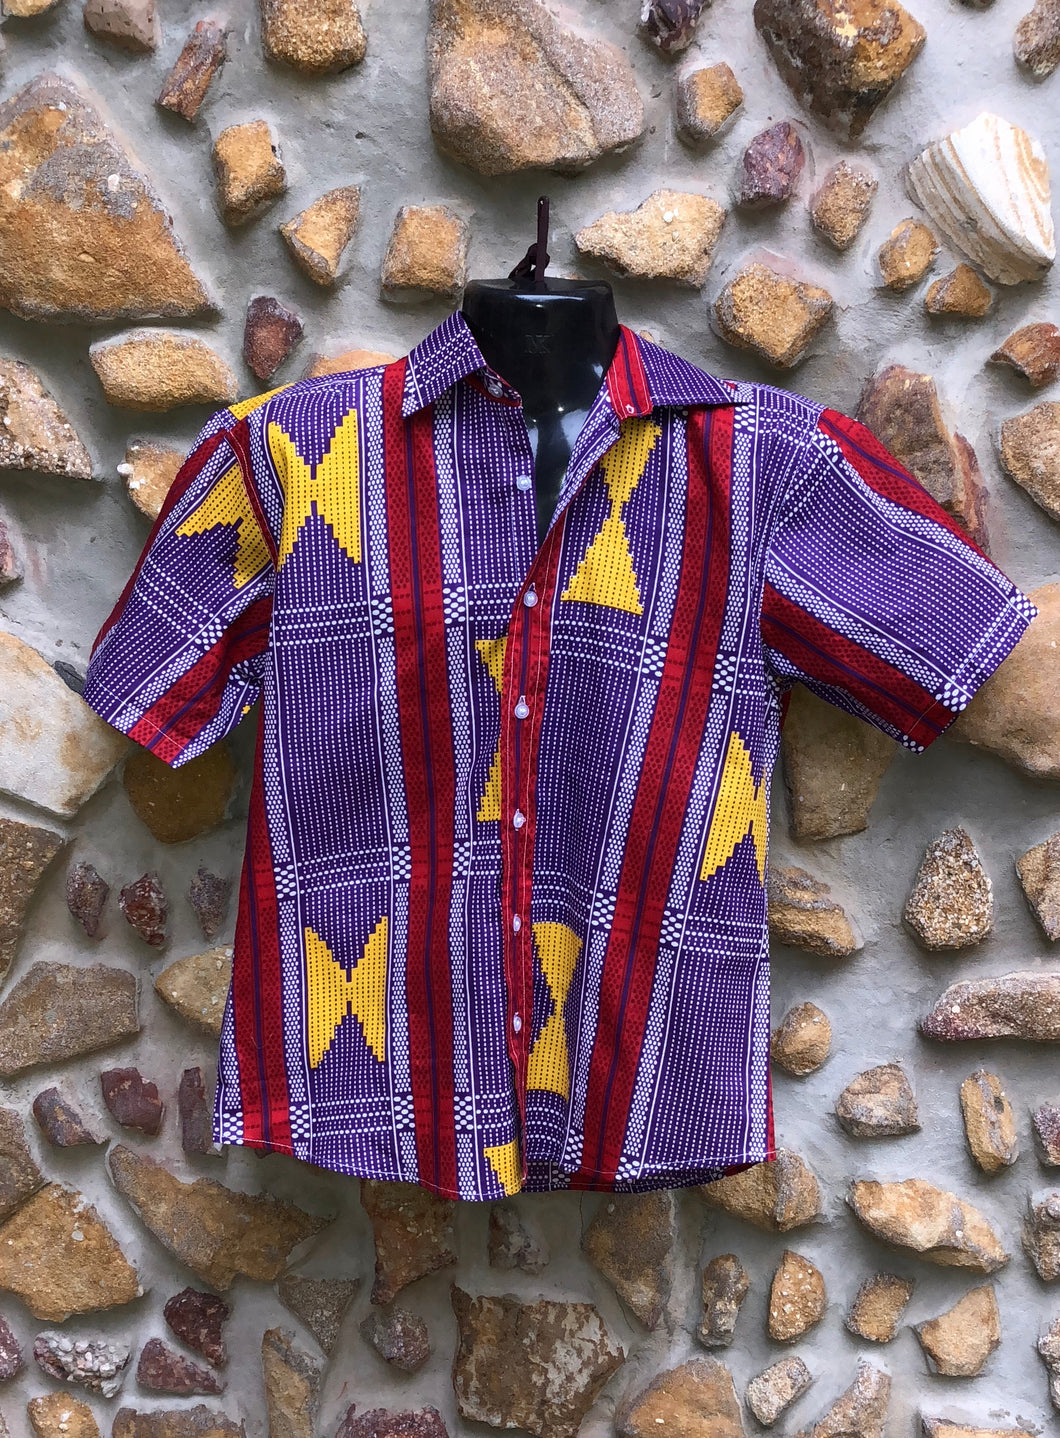 XXL Love Shirt - Purple, Yellow and Red African Print